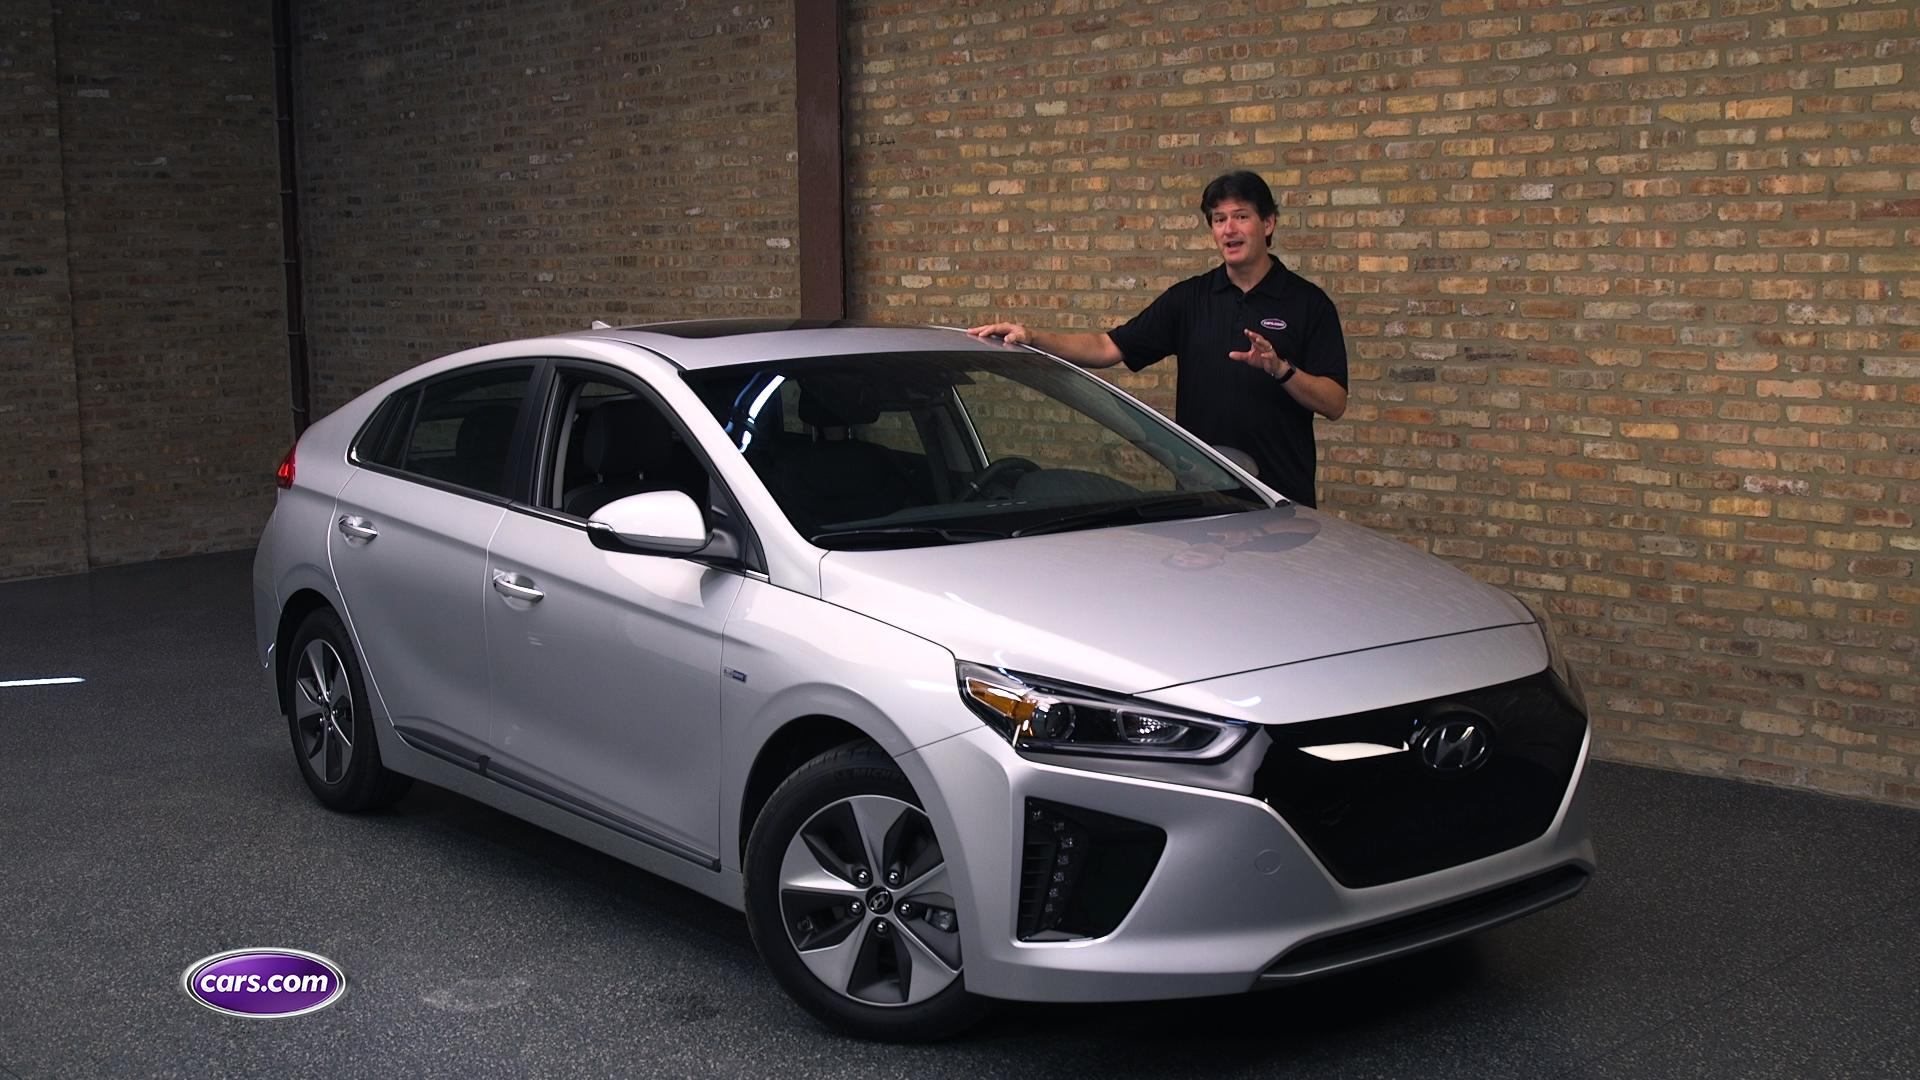 Video: 2017 Hyundai Ioniq Electric Review